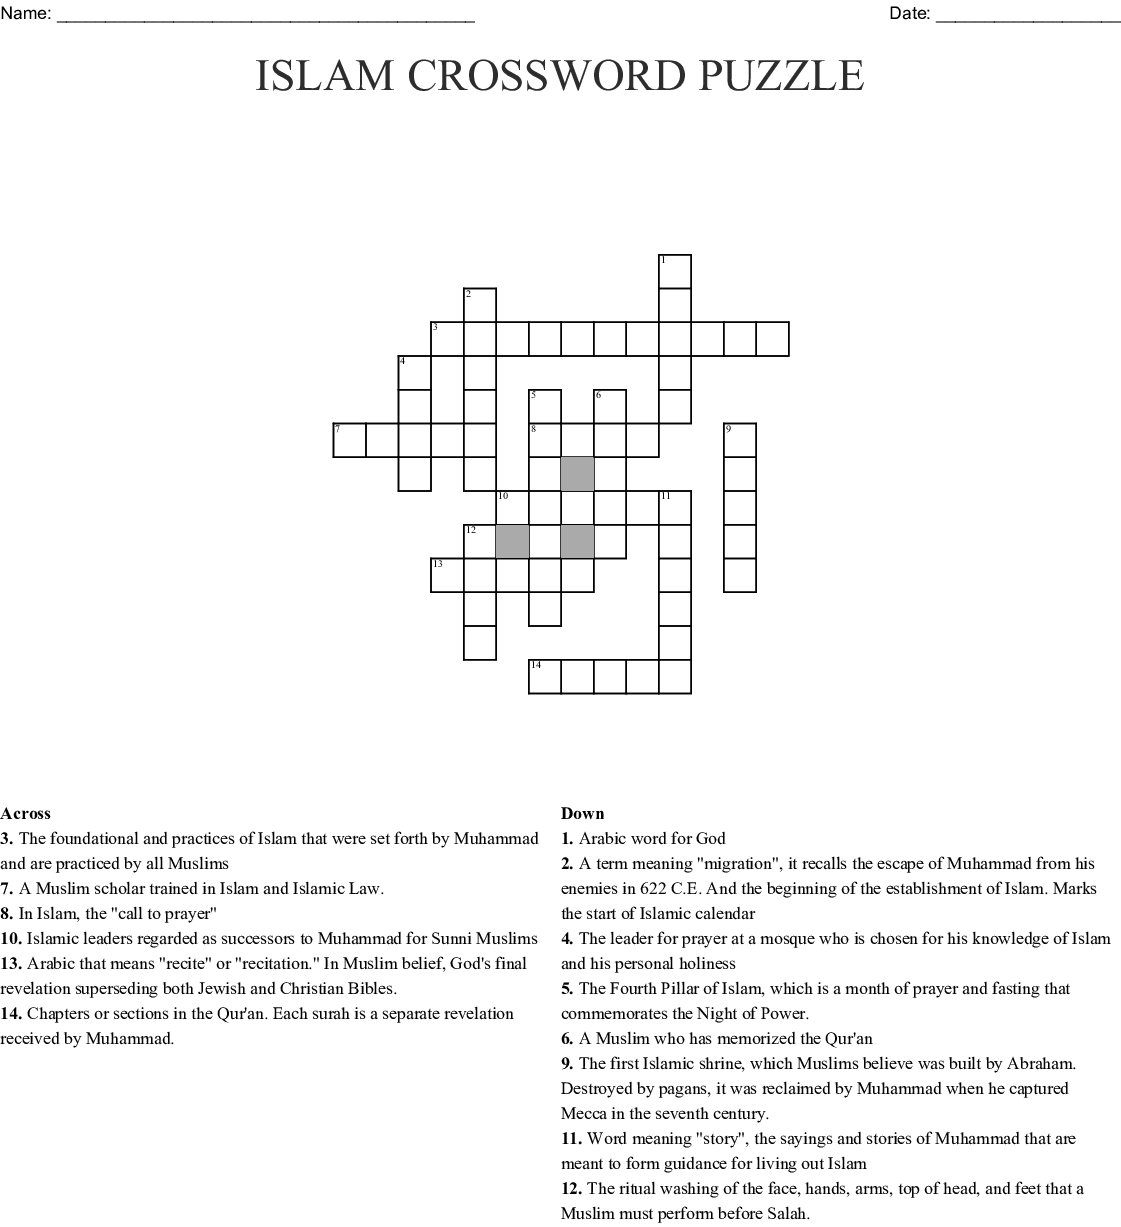 Islam Crossword Puzzle Crossword - Wordmint - Islamic Crossword Puzzles Printable